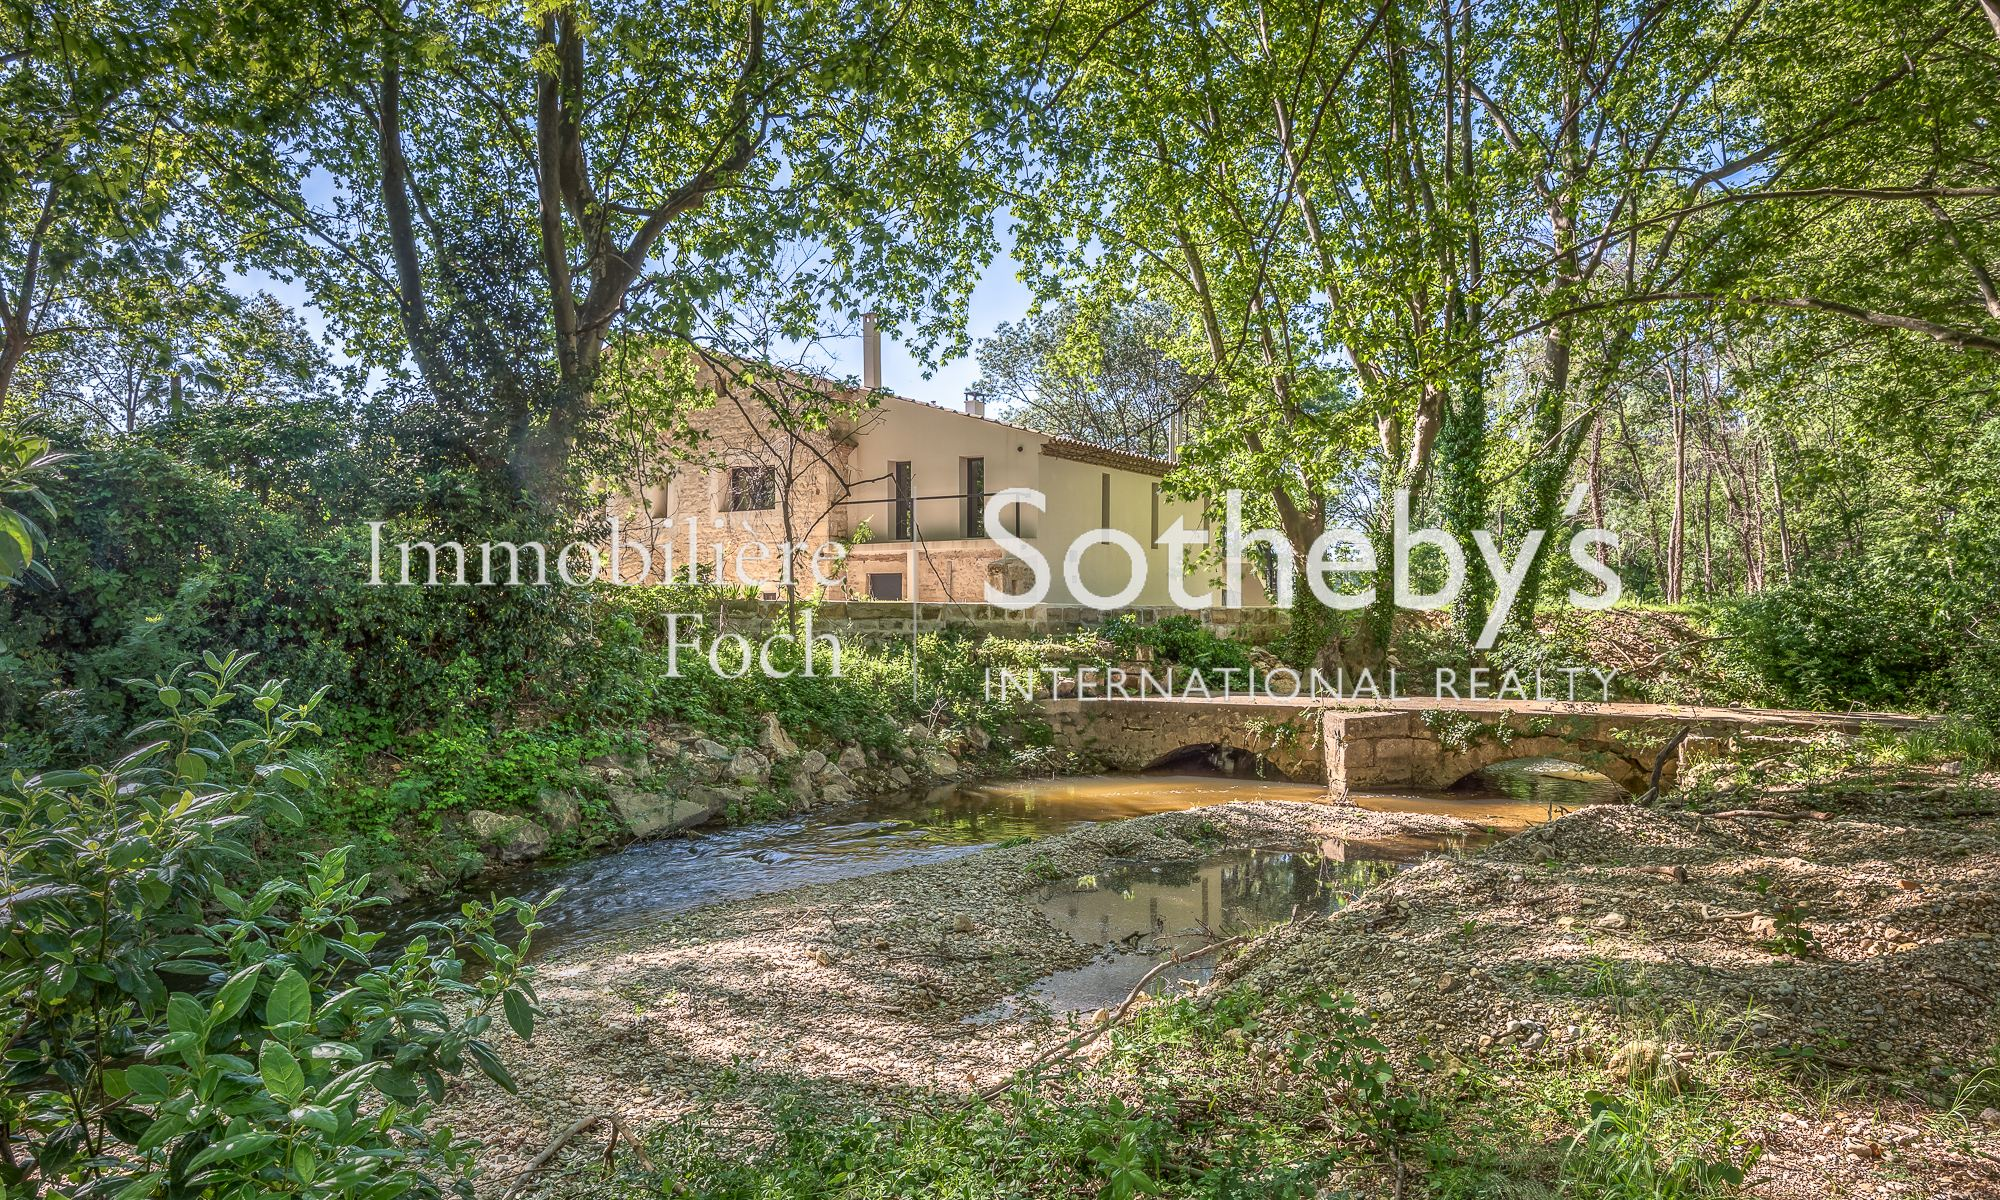 Property For Sale at EXCEPTIONAL PROPERTY - 15 Minutes from Montpellier